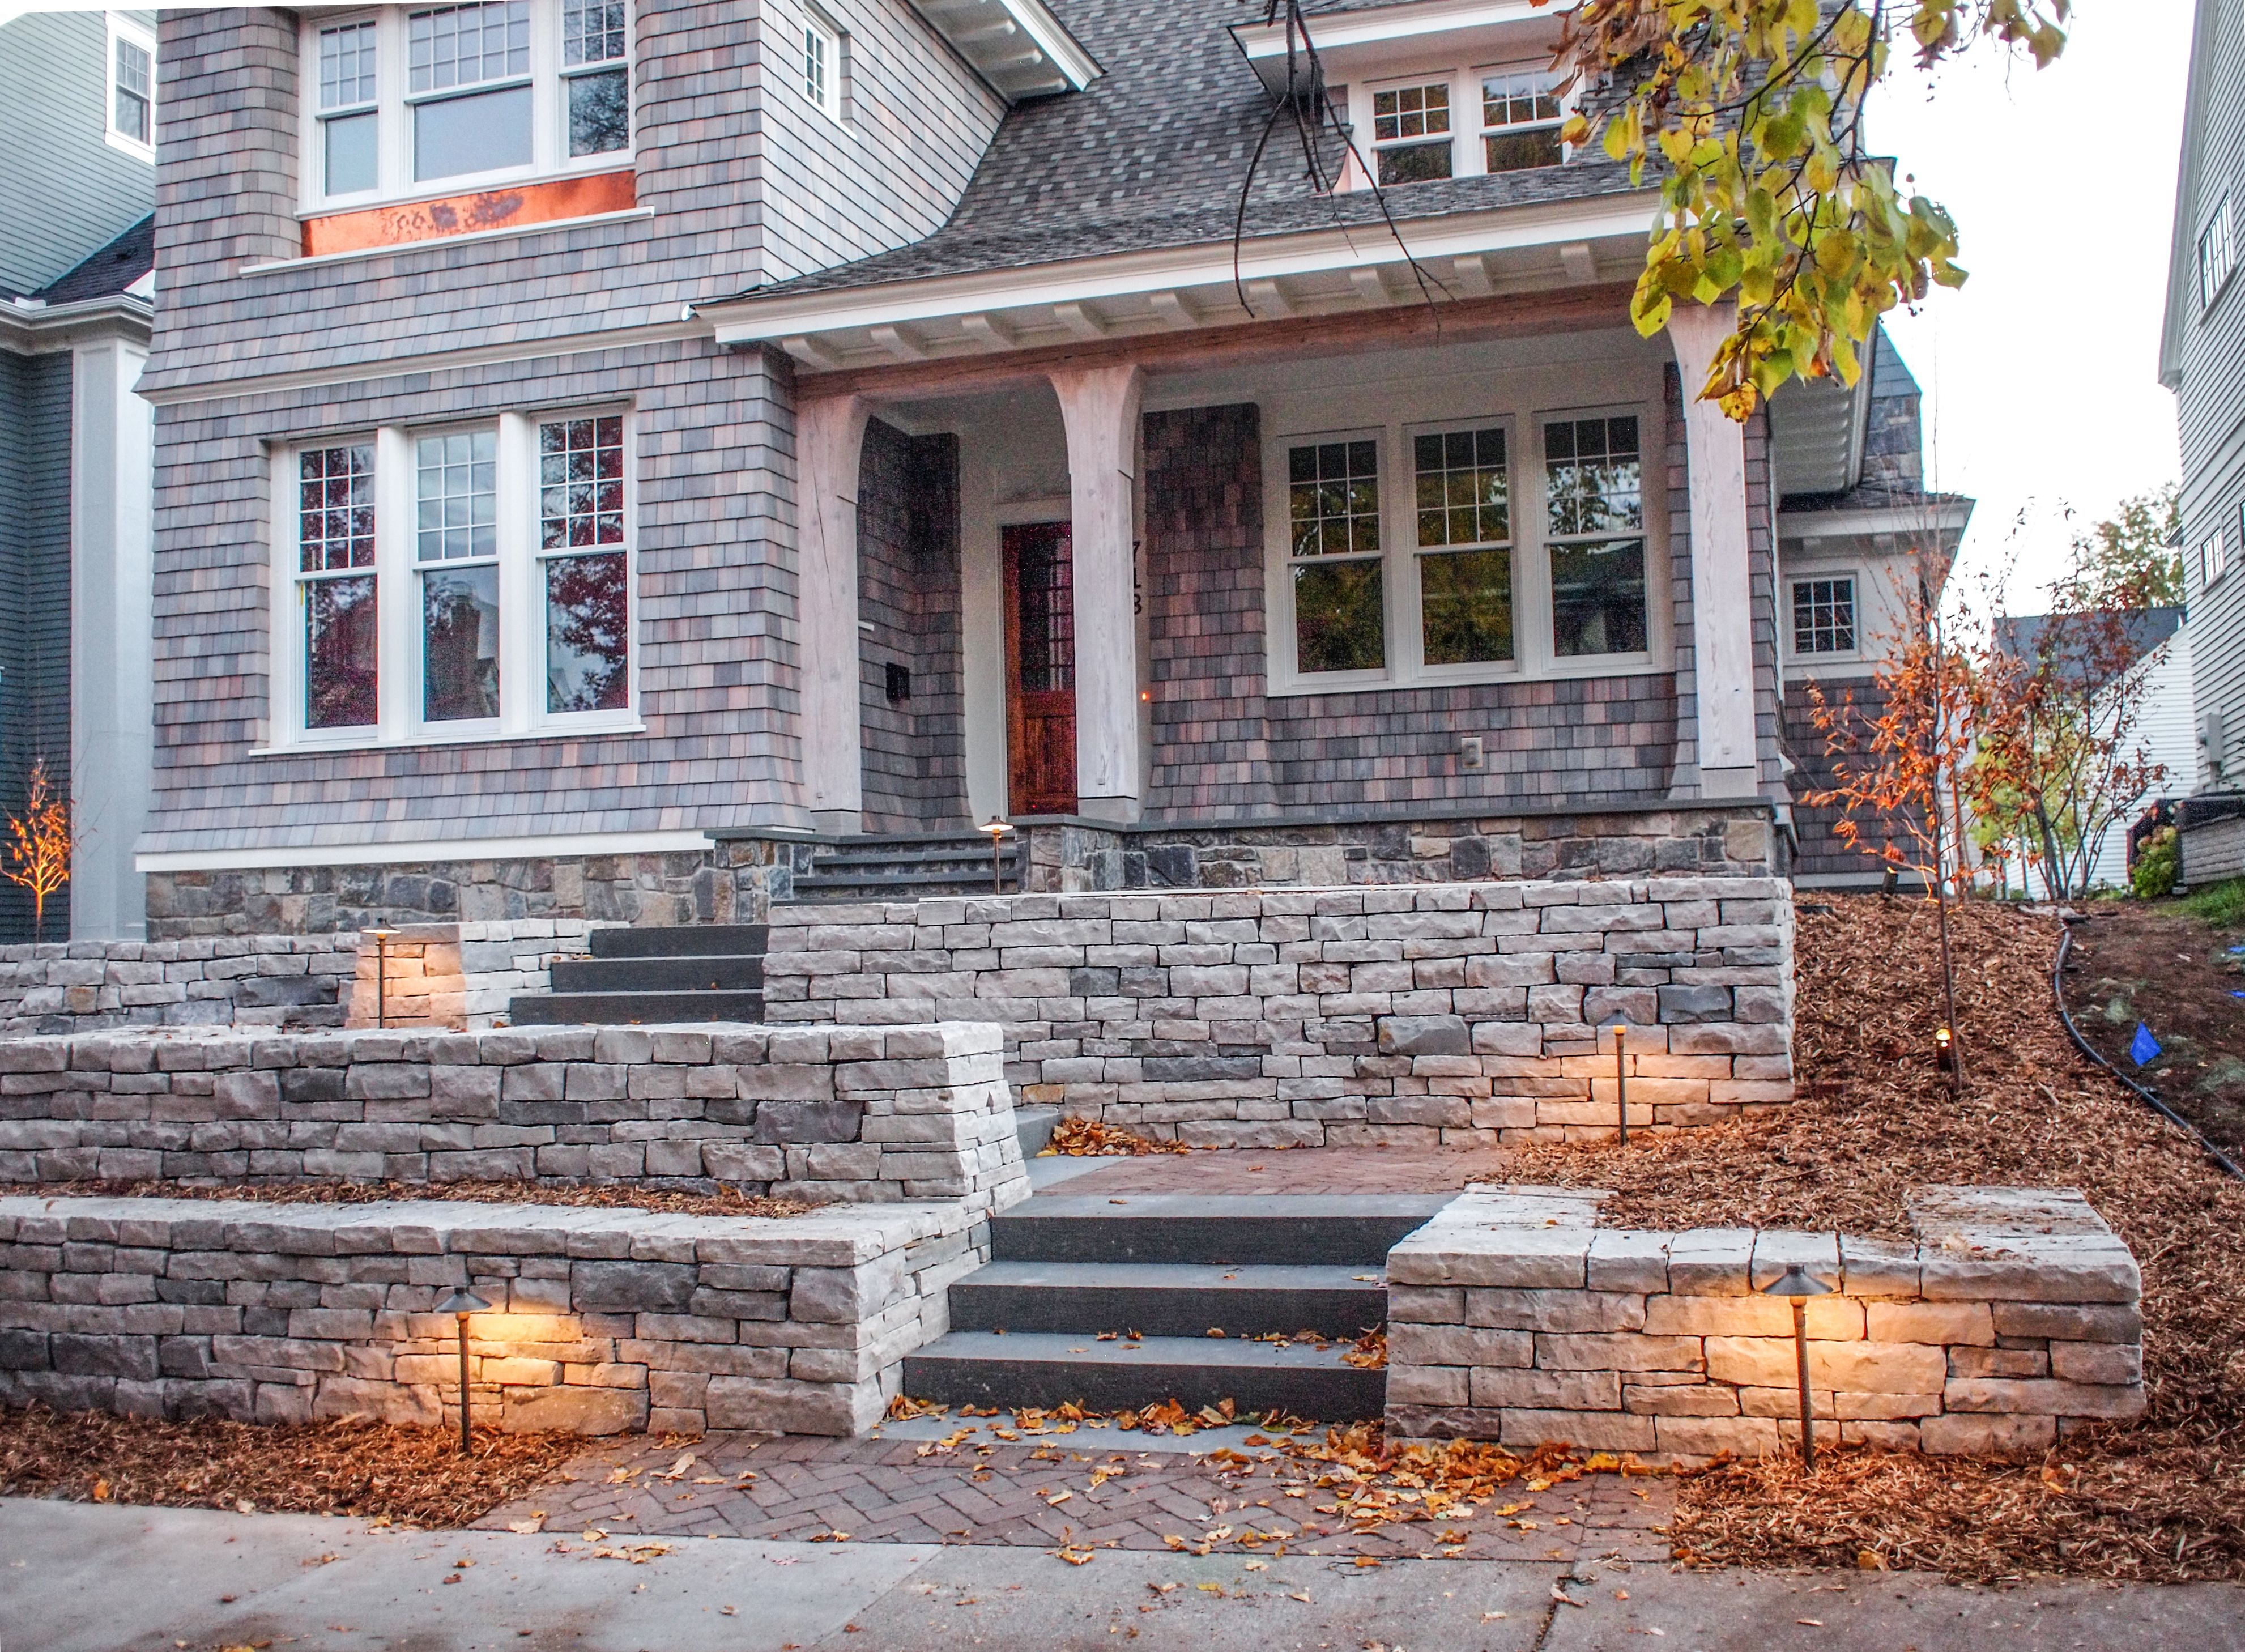 A Season Designer Shows A Gallery Of Amazing Work Including This Stone With Brick Paver Landings Entrance Landscape Design Brick Outdoor Makeover